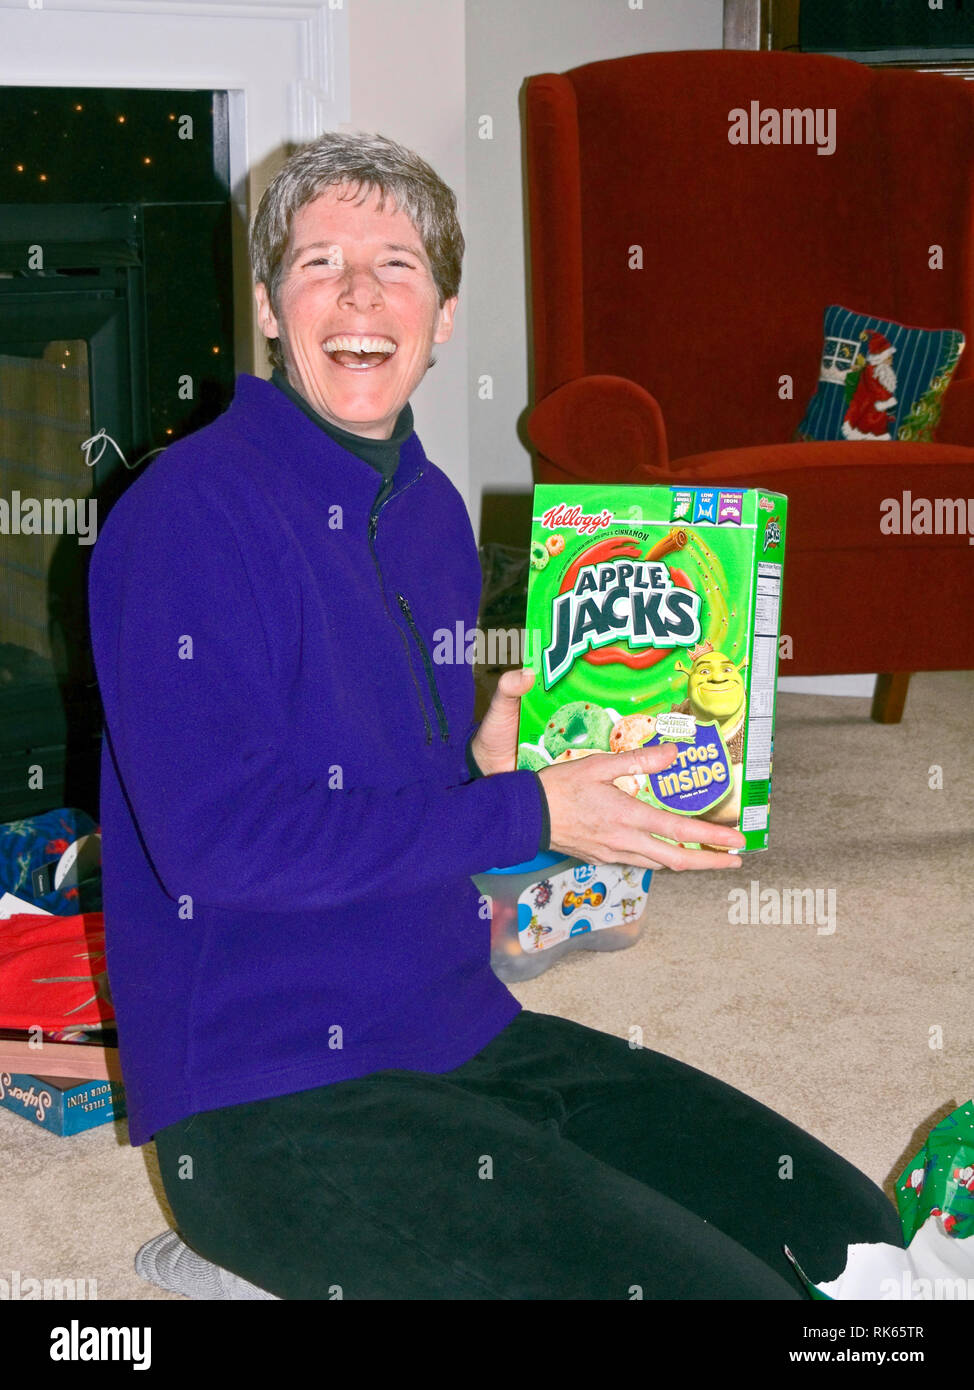 woman holding kids cereal box; laughing; gag Christmas gift; celebration, holiday, festive, fun, winter; vertical; MR - Stock Image